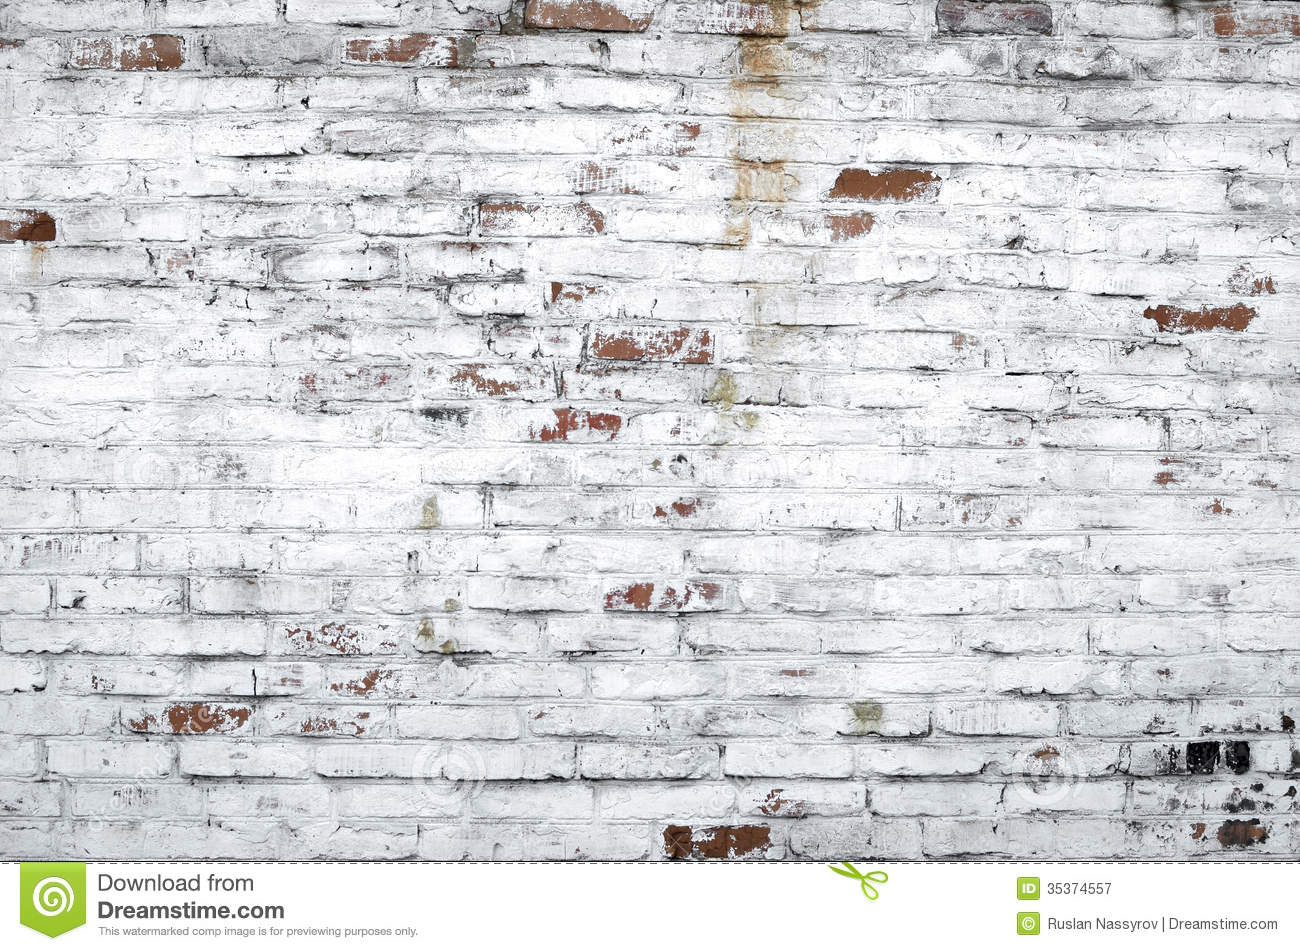 Royalty Free Stock Photo  Download Old Brick Wall. Old Brick Wall Royalty Free Stock Photography   Image  35374557